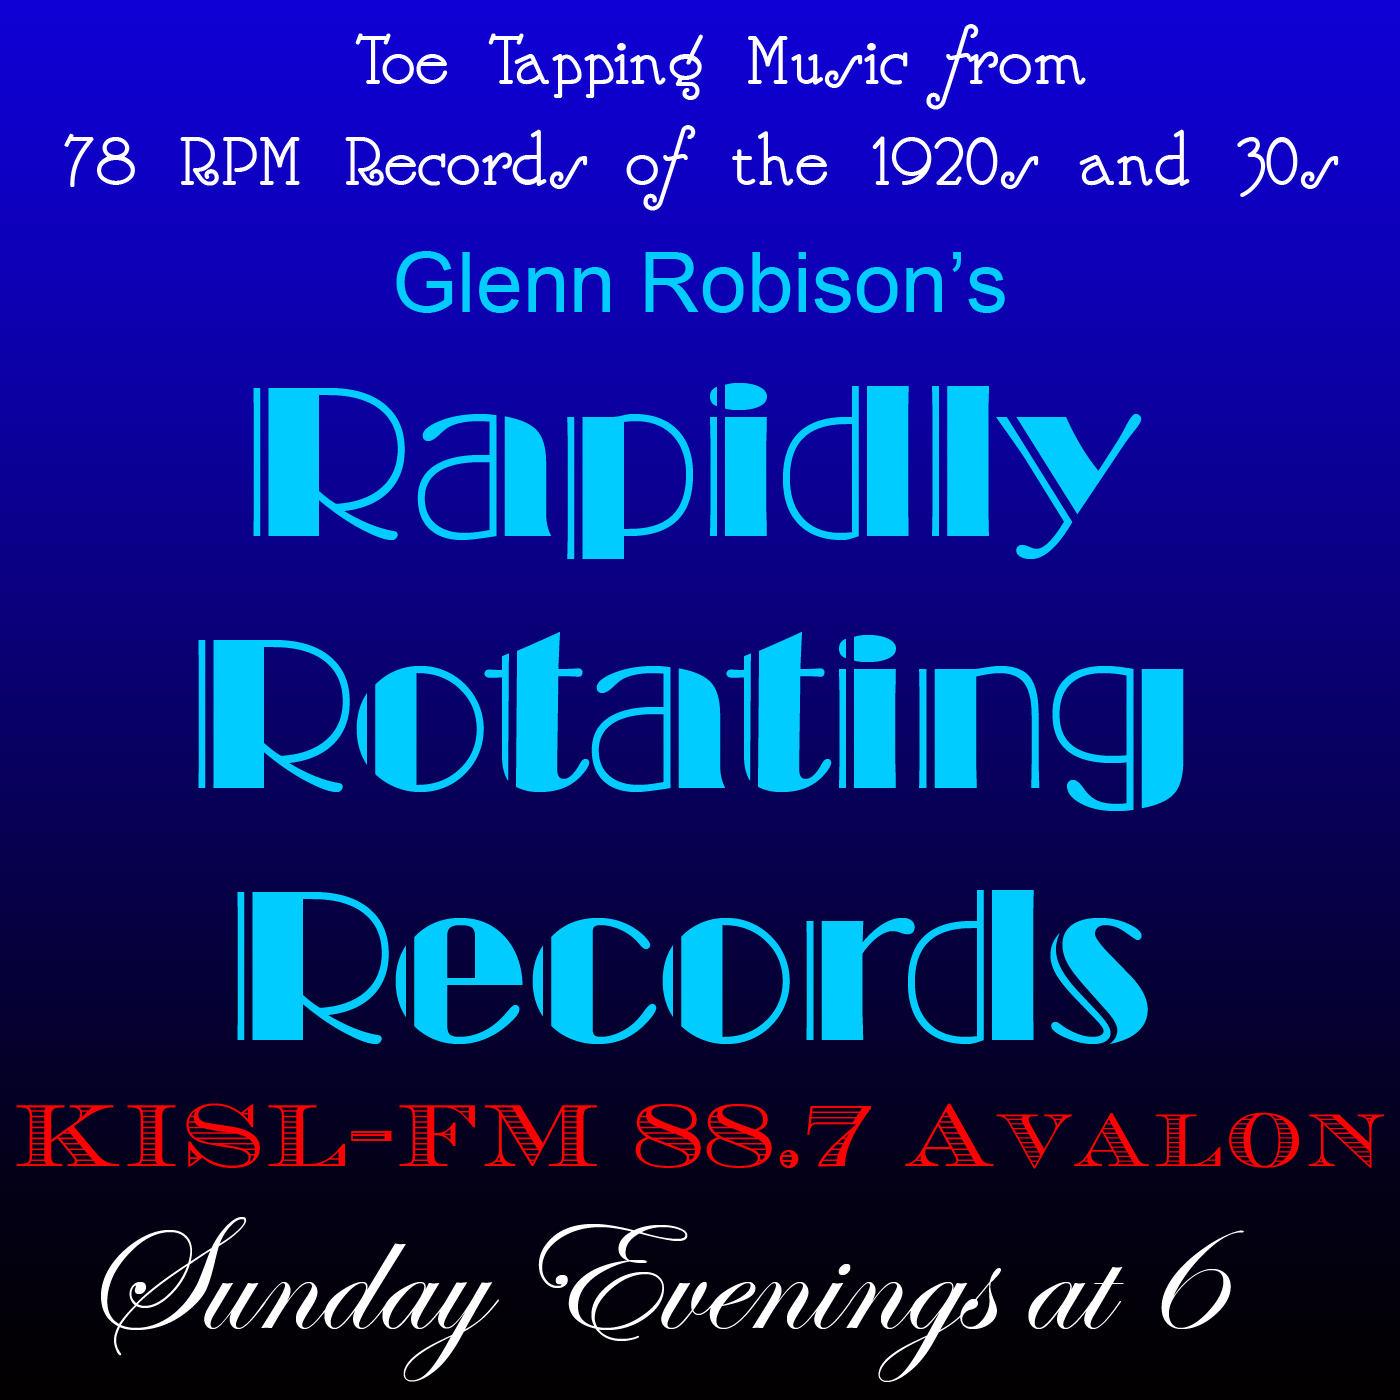 Rapidly Rotating Records